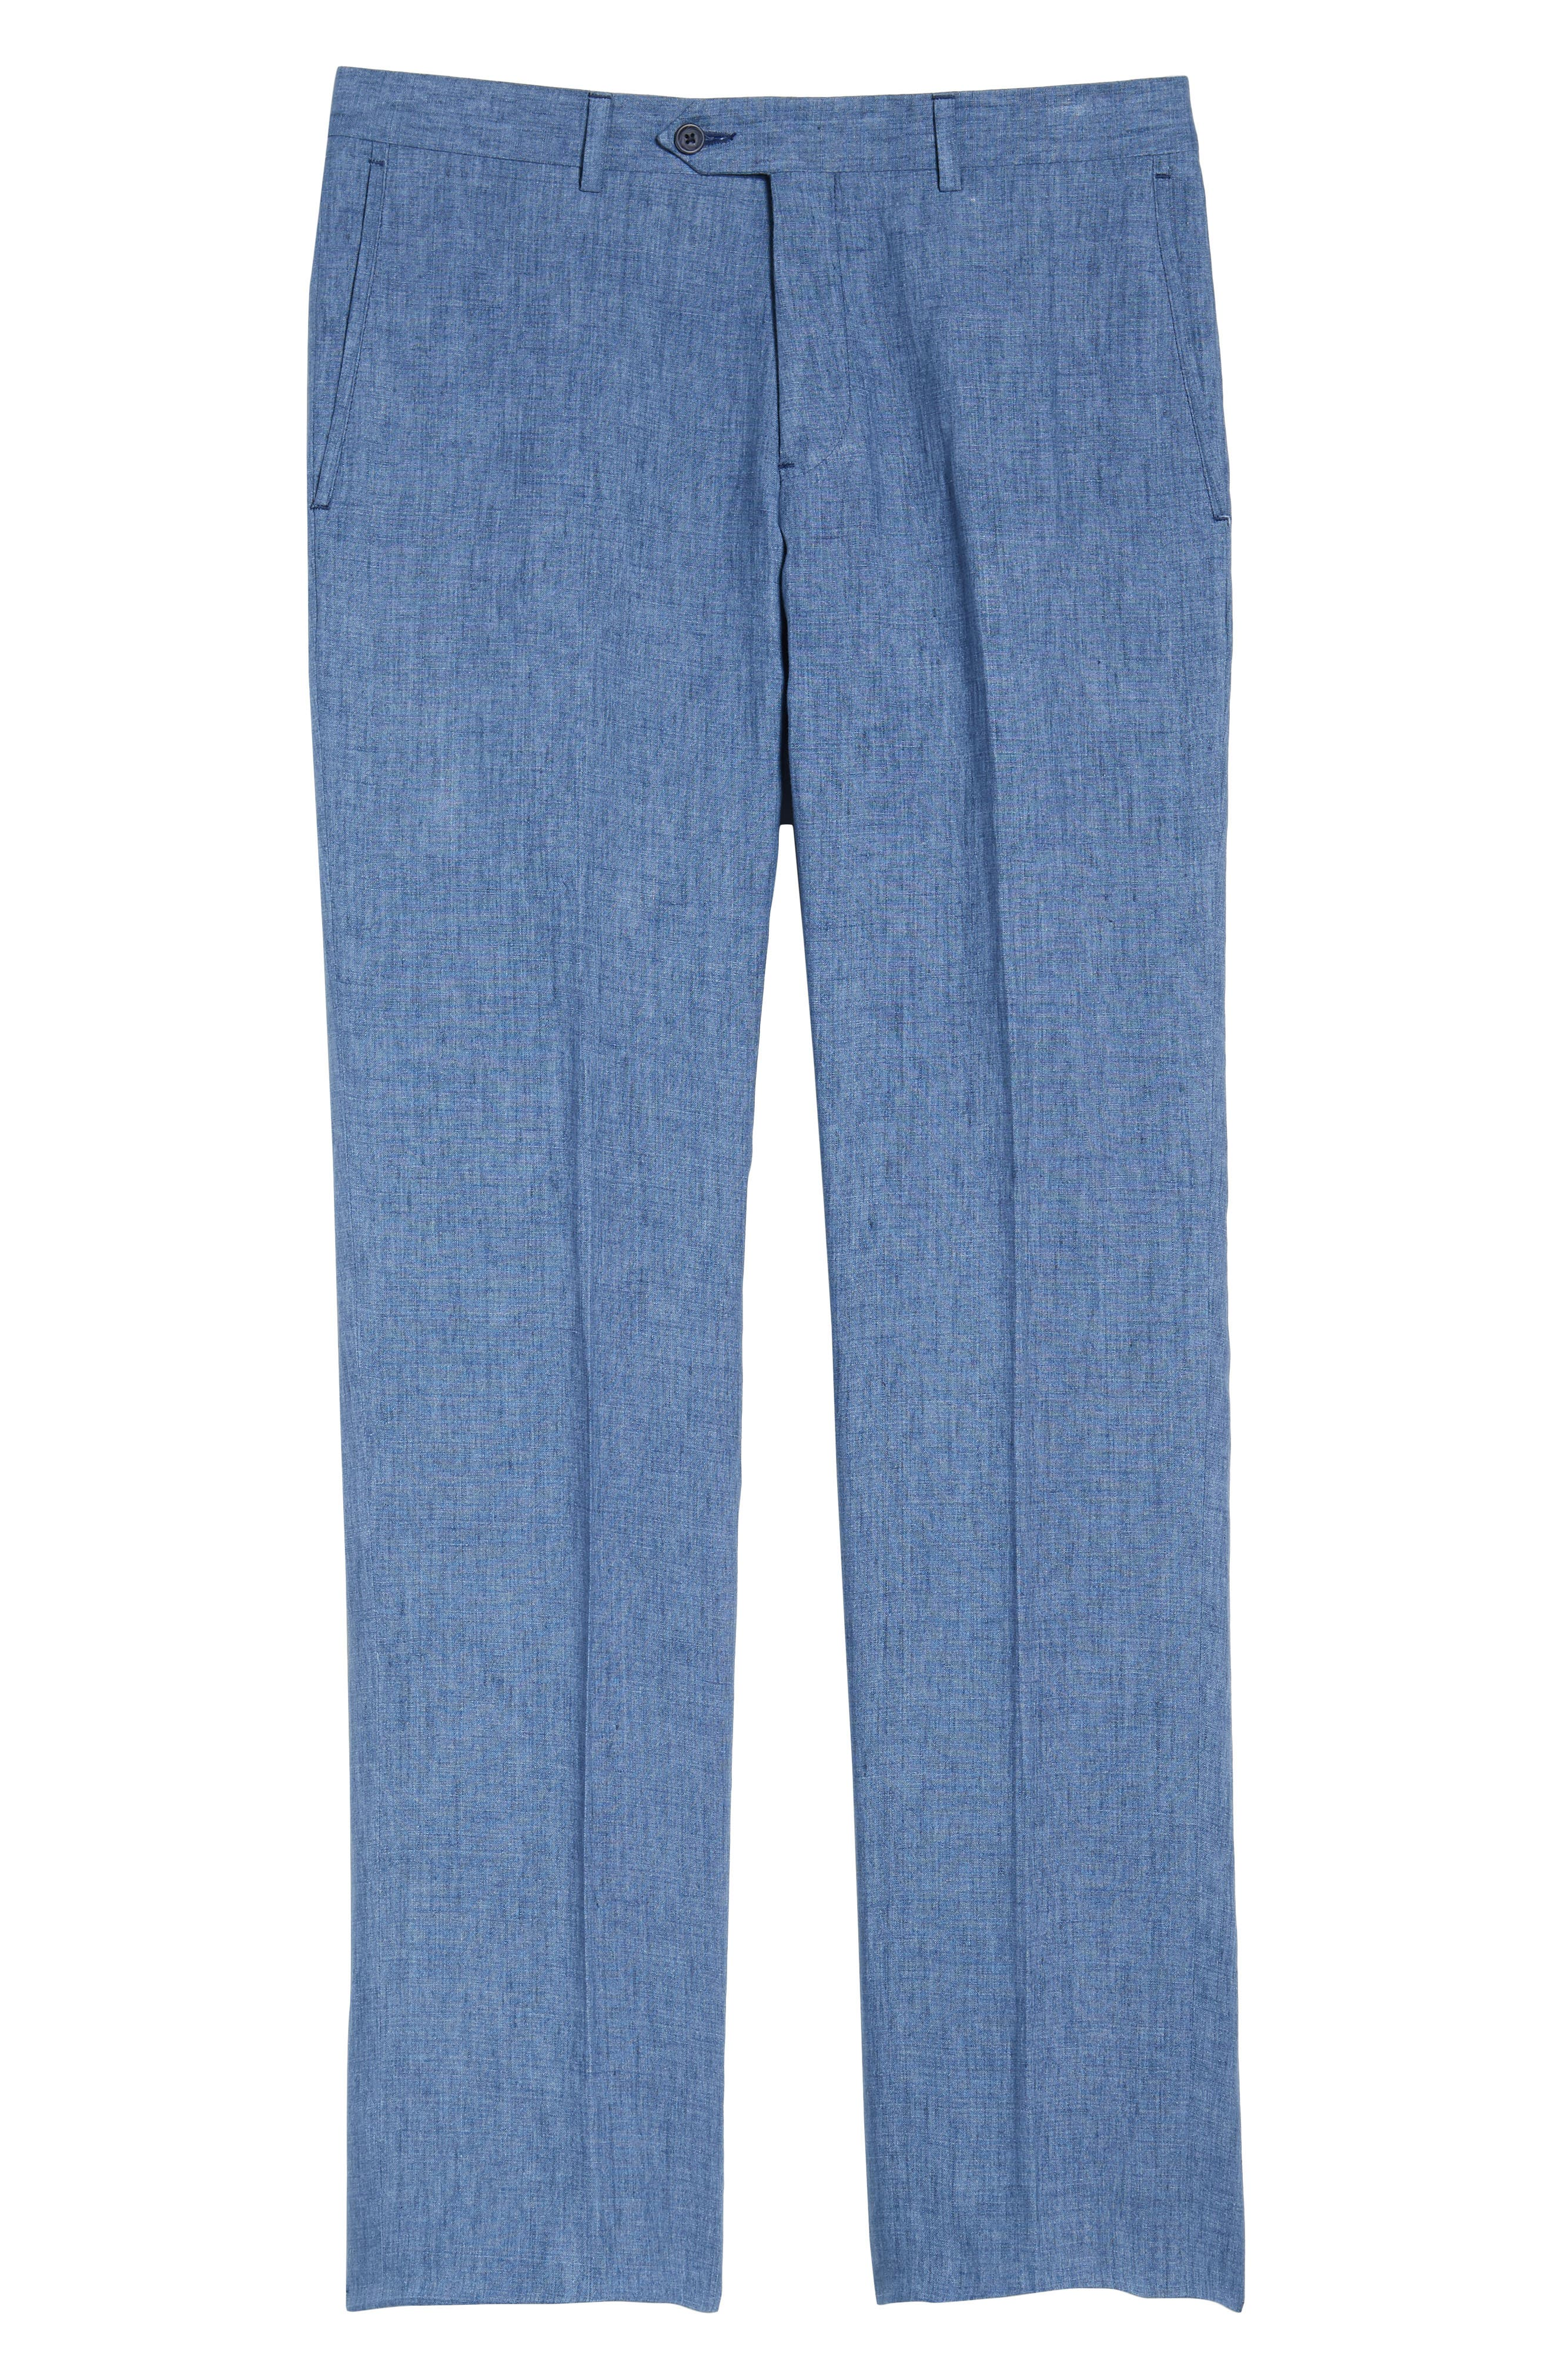 Flat Front Solid Linen Trousers,                             Alternate thumbnail 6, color,                             Blue Denim